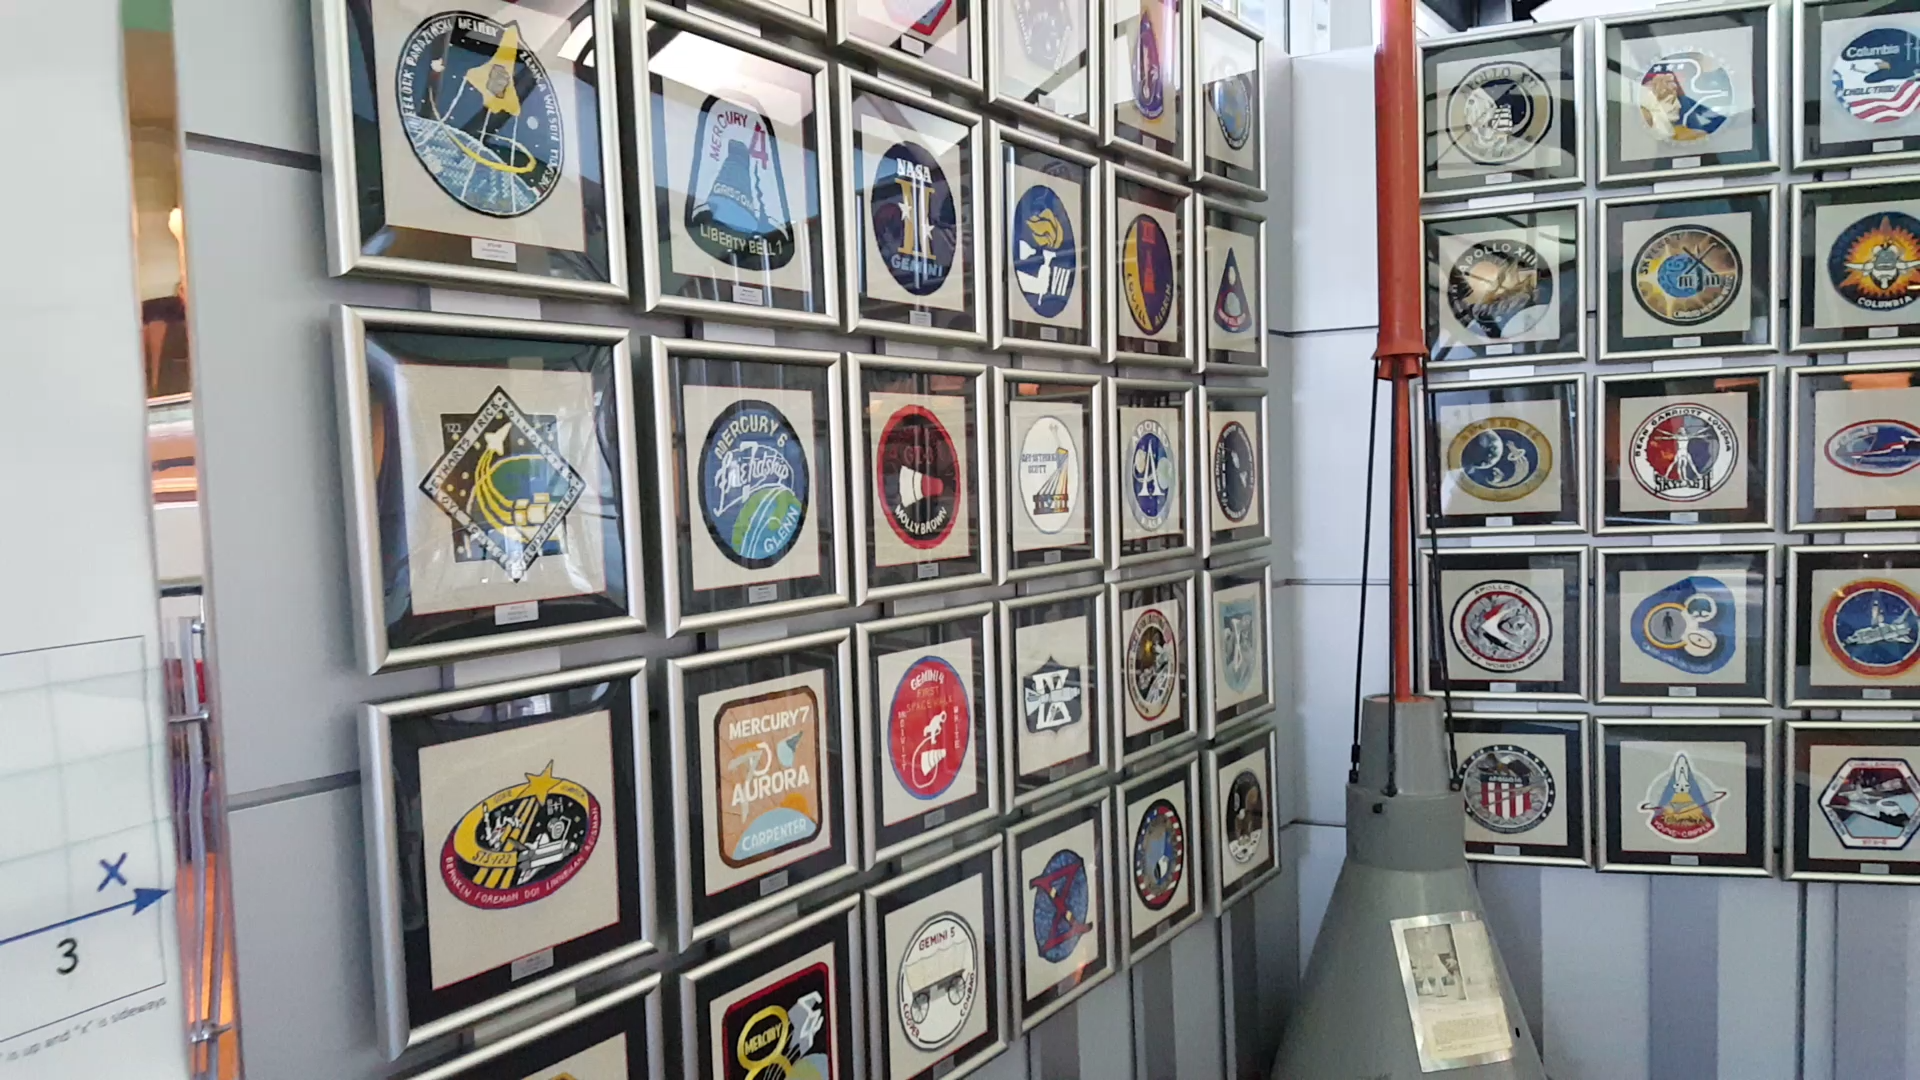 The wall of patches stretches on and on with a patch from every space mission, framed and hung in a row